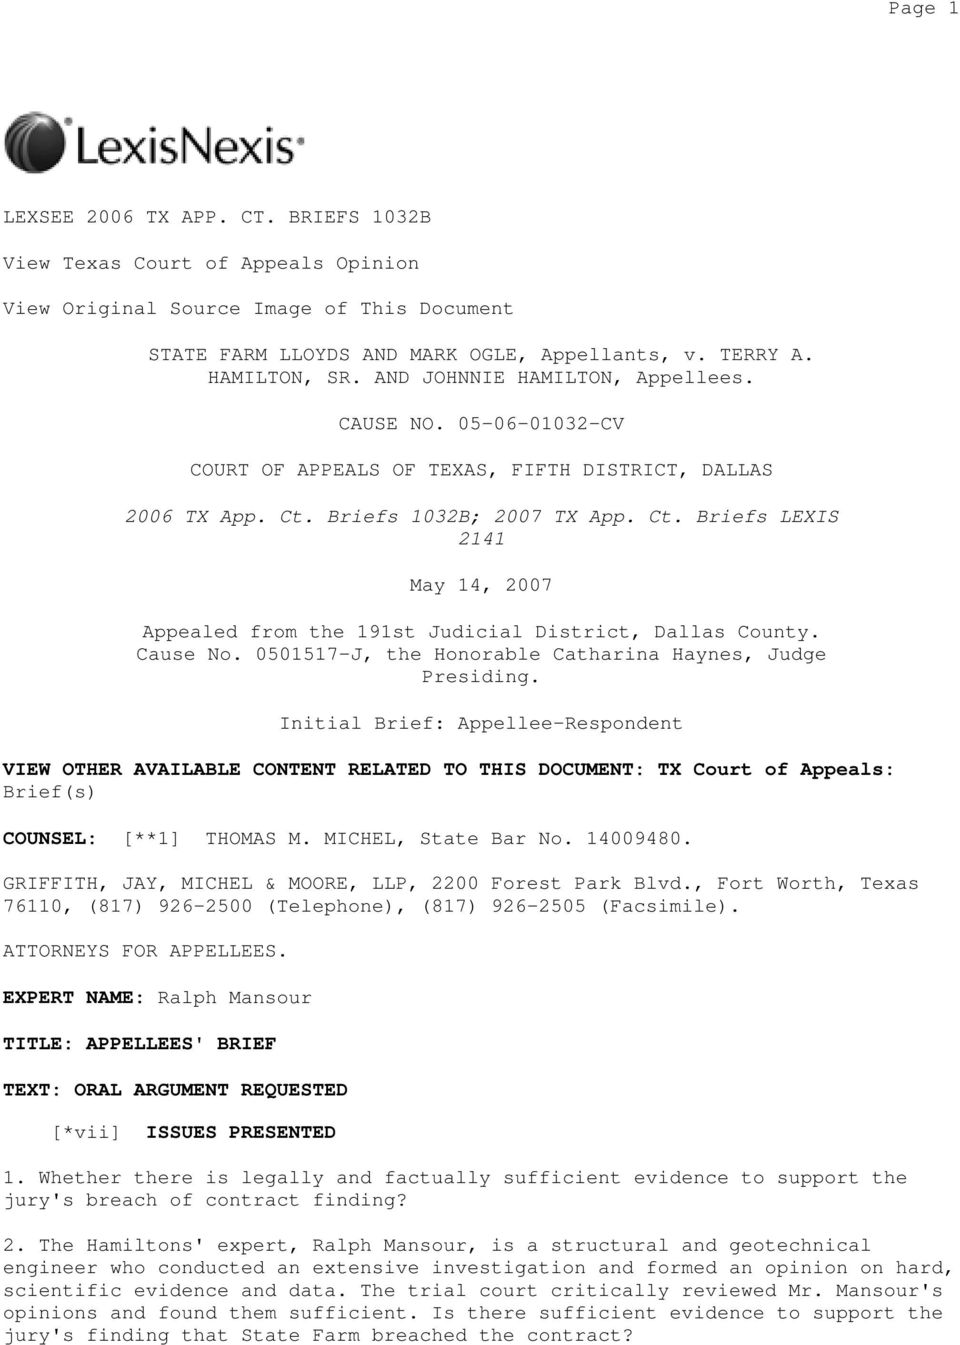 Briefs 1032B; 2007 TX App. Ct. Briefs LEXIS 2141 May 14, 2007 Appealed from the 191st Judicial District, Dallas County. Cause No. 0501517-J, the Honorable Catharina Haynes, Judge Presiding.